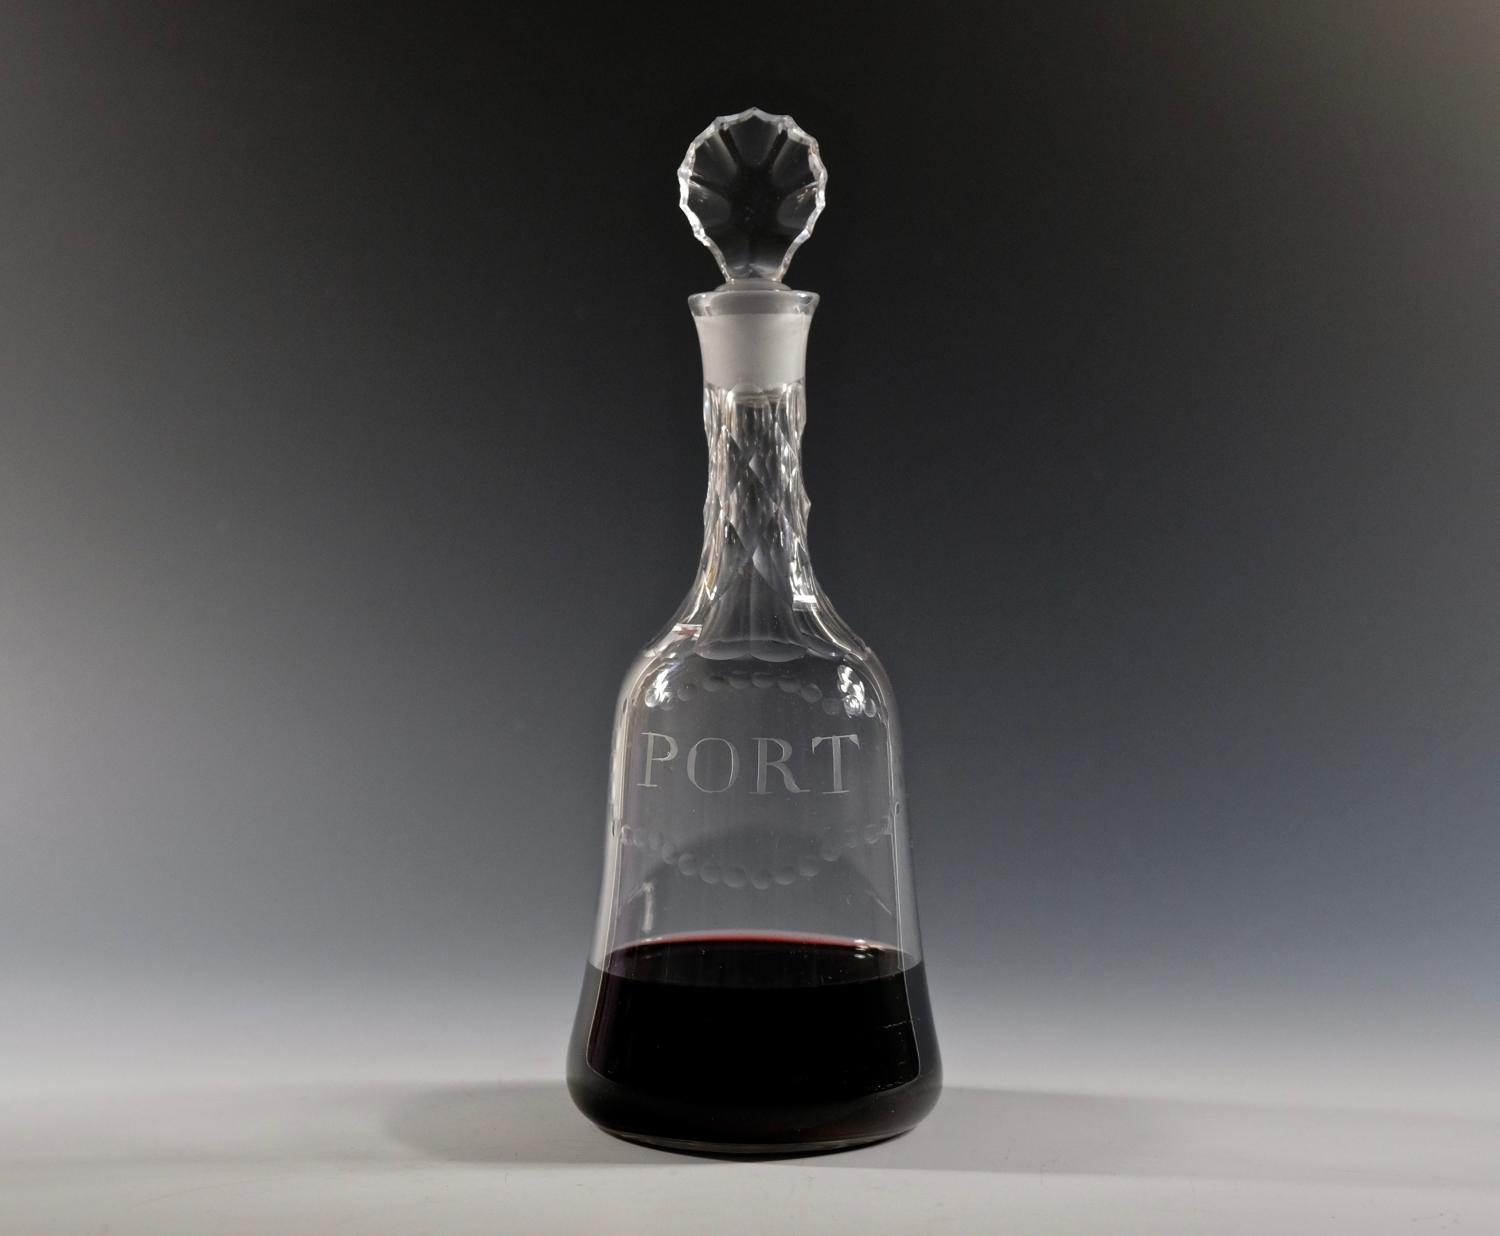 Fine mallet decanter labelled Port English C1770